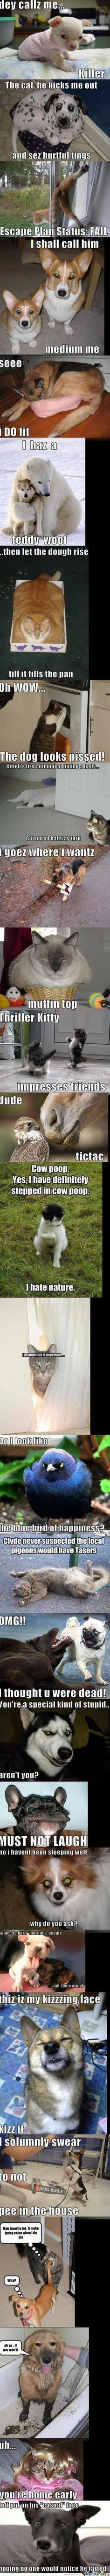 30 Cute And Funny Animals cute animals dogs cats adorable dog puppy animal pets lol humor funny pictures funny animals funny pets funny cats funny dogs Humor Animal, Funny Animal Memes, Cute Funny Animals, Funny Animal Pictures, Funny Cute, Funny Dogs, Animal Logic, Funny Memes, Funny Captions